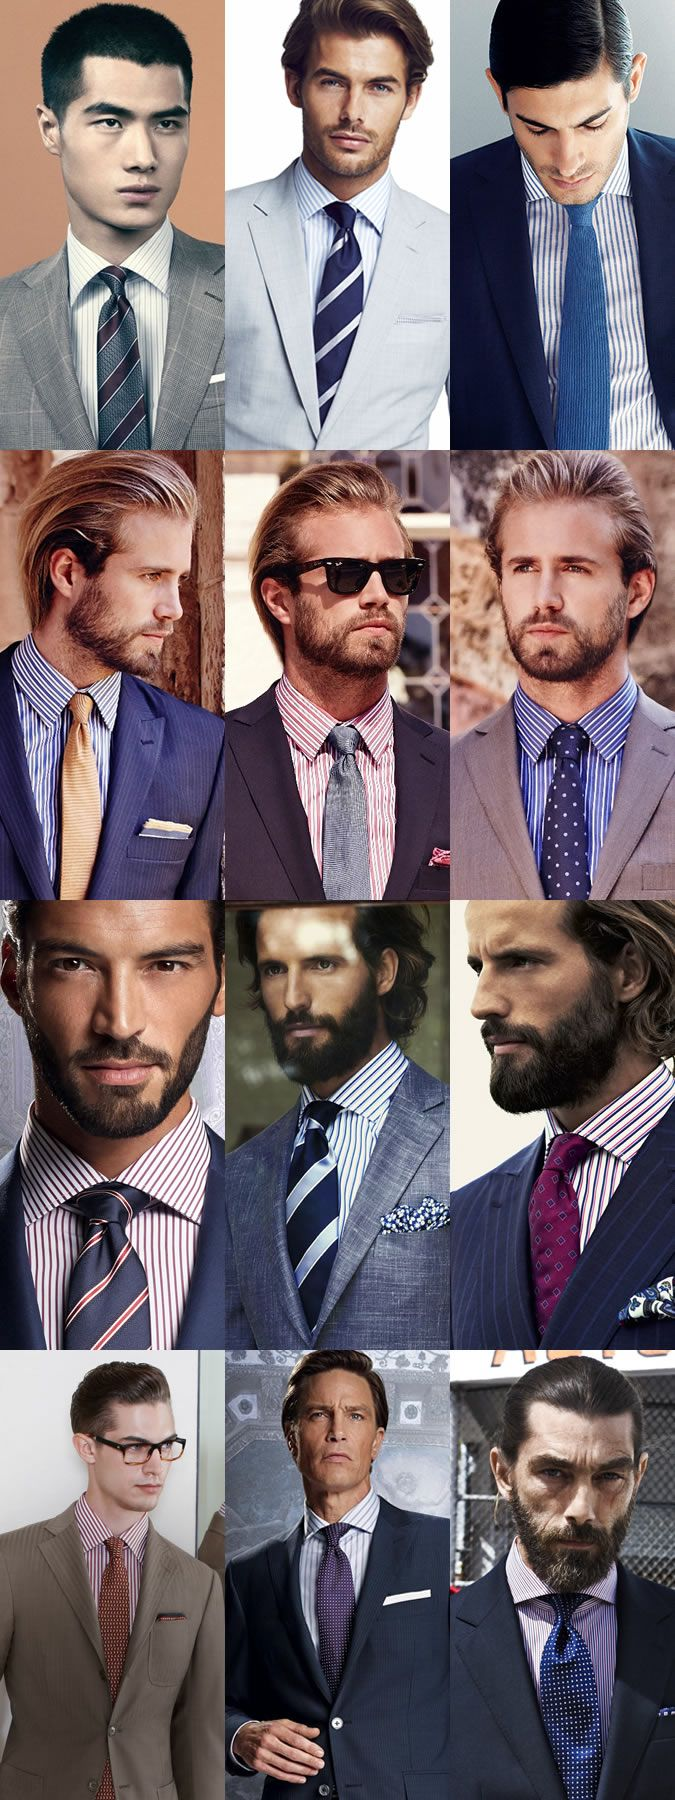 Men 39 S Striped Shirts And Tie Combinations Lookbook From: blue suit shirt tie combinations